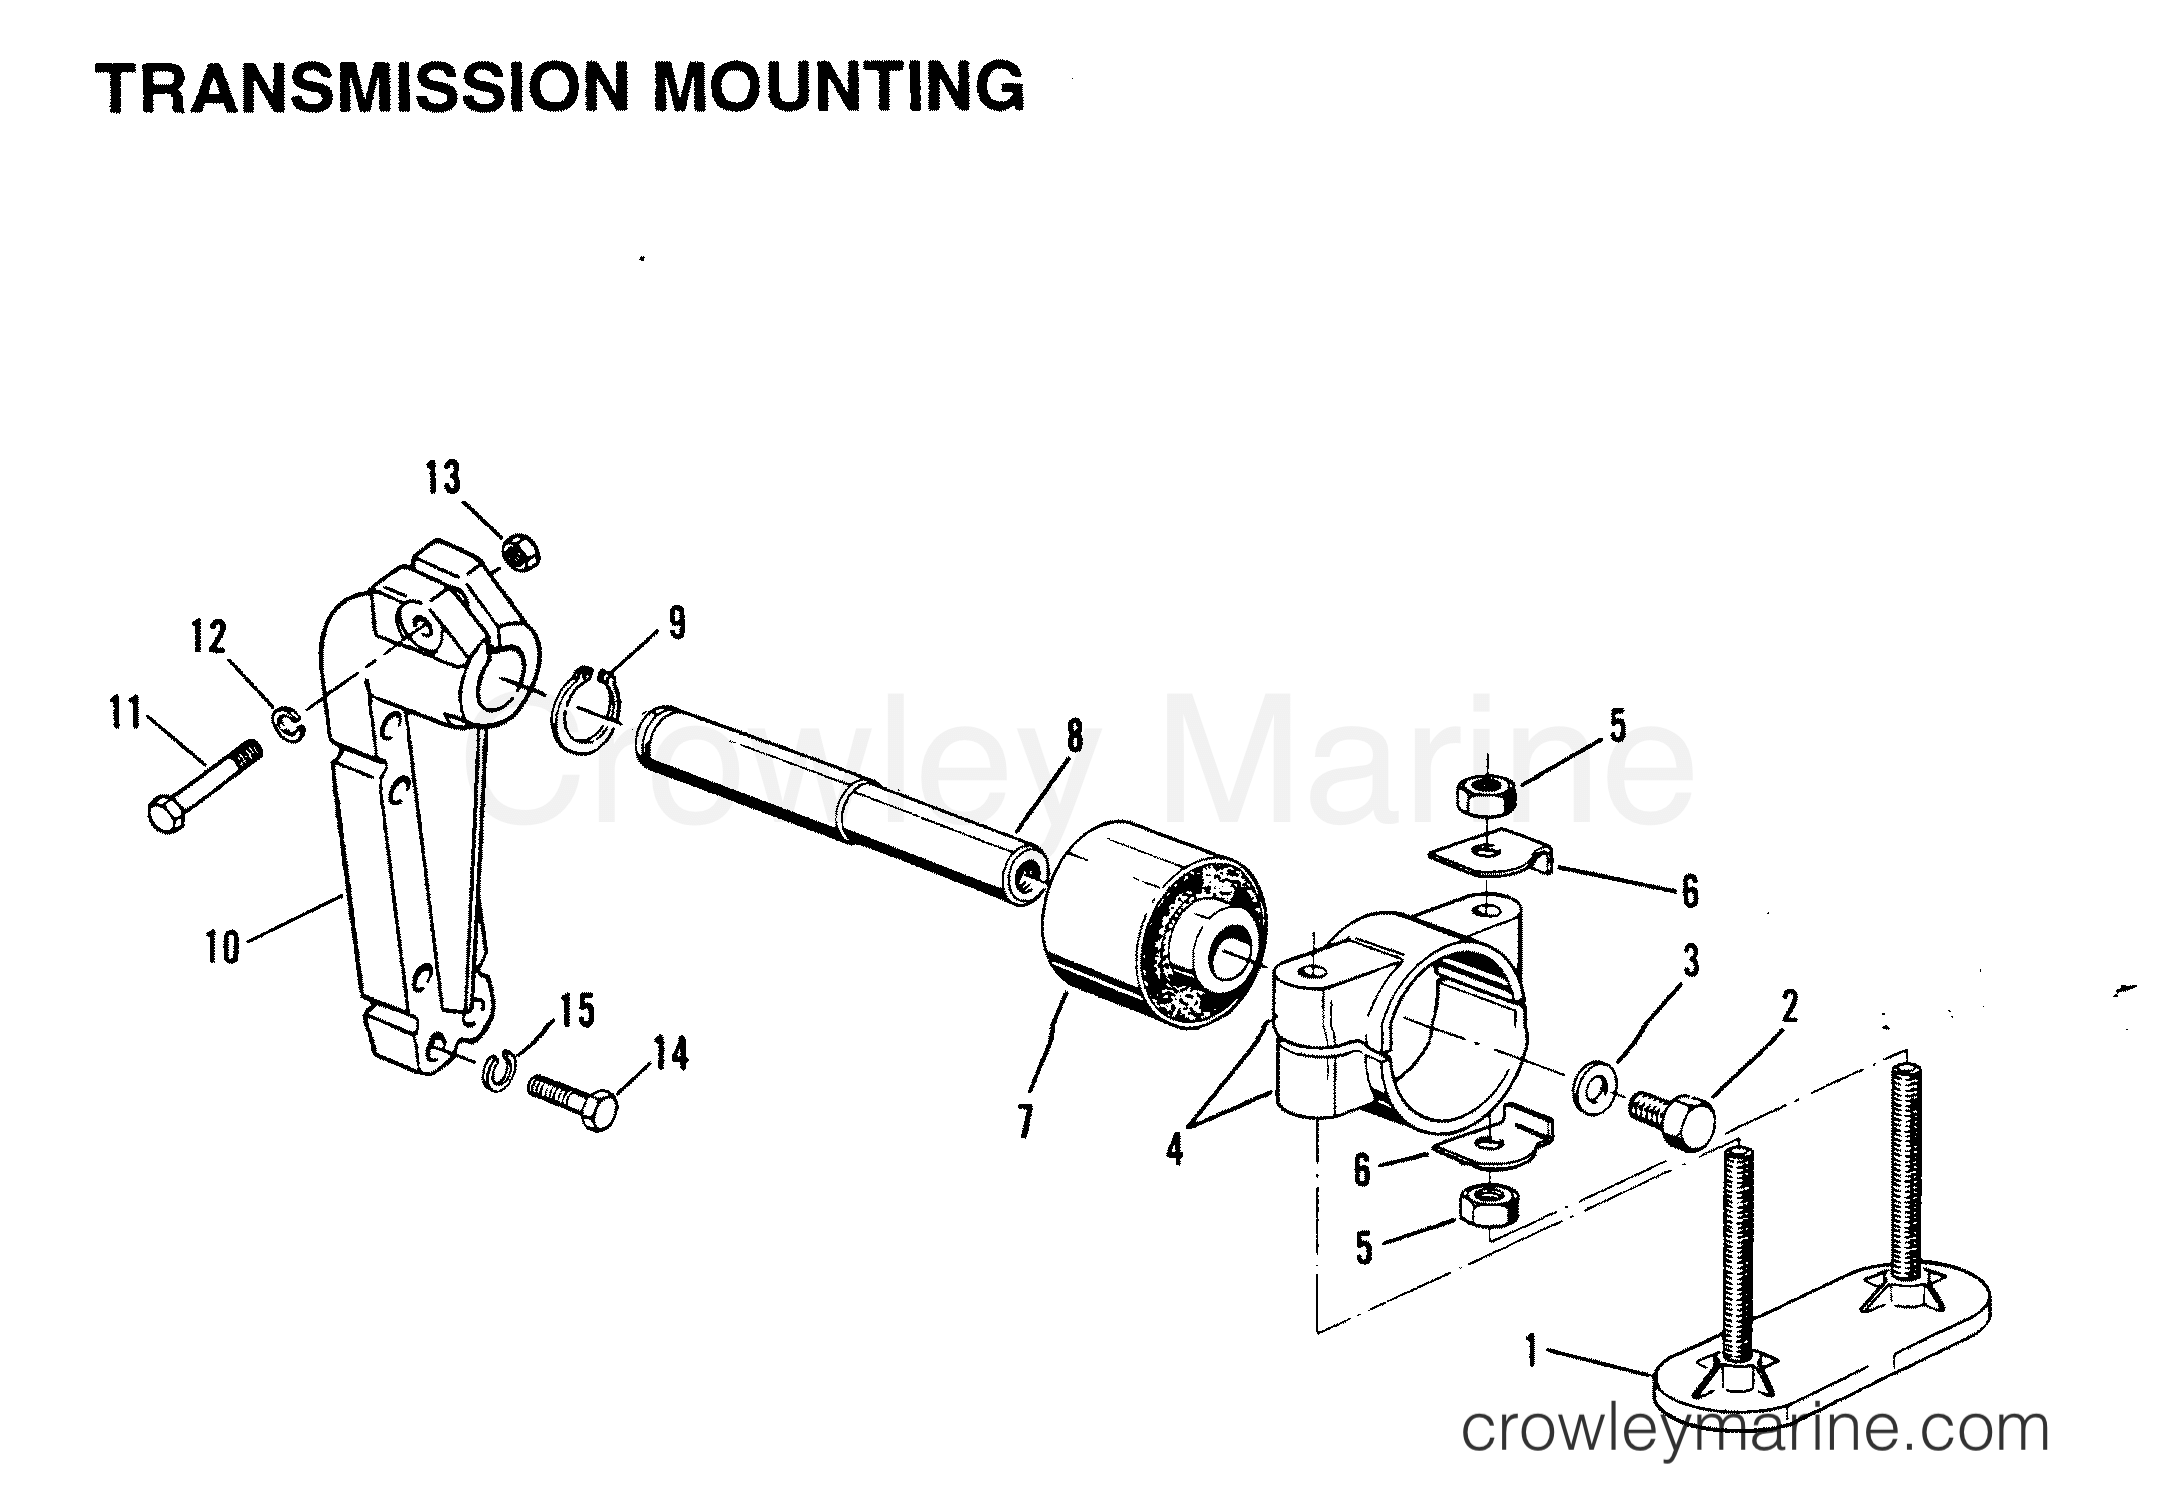 Transmission Mounting Inboard